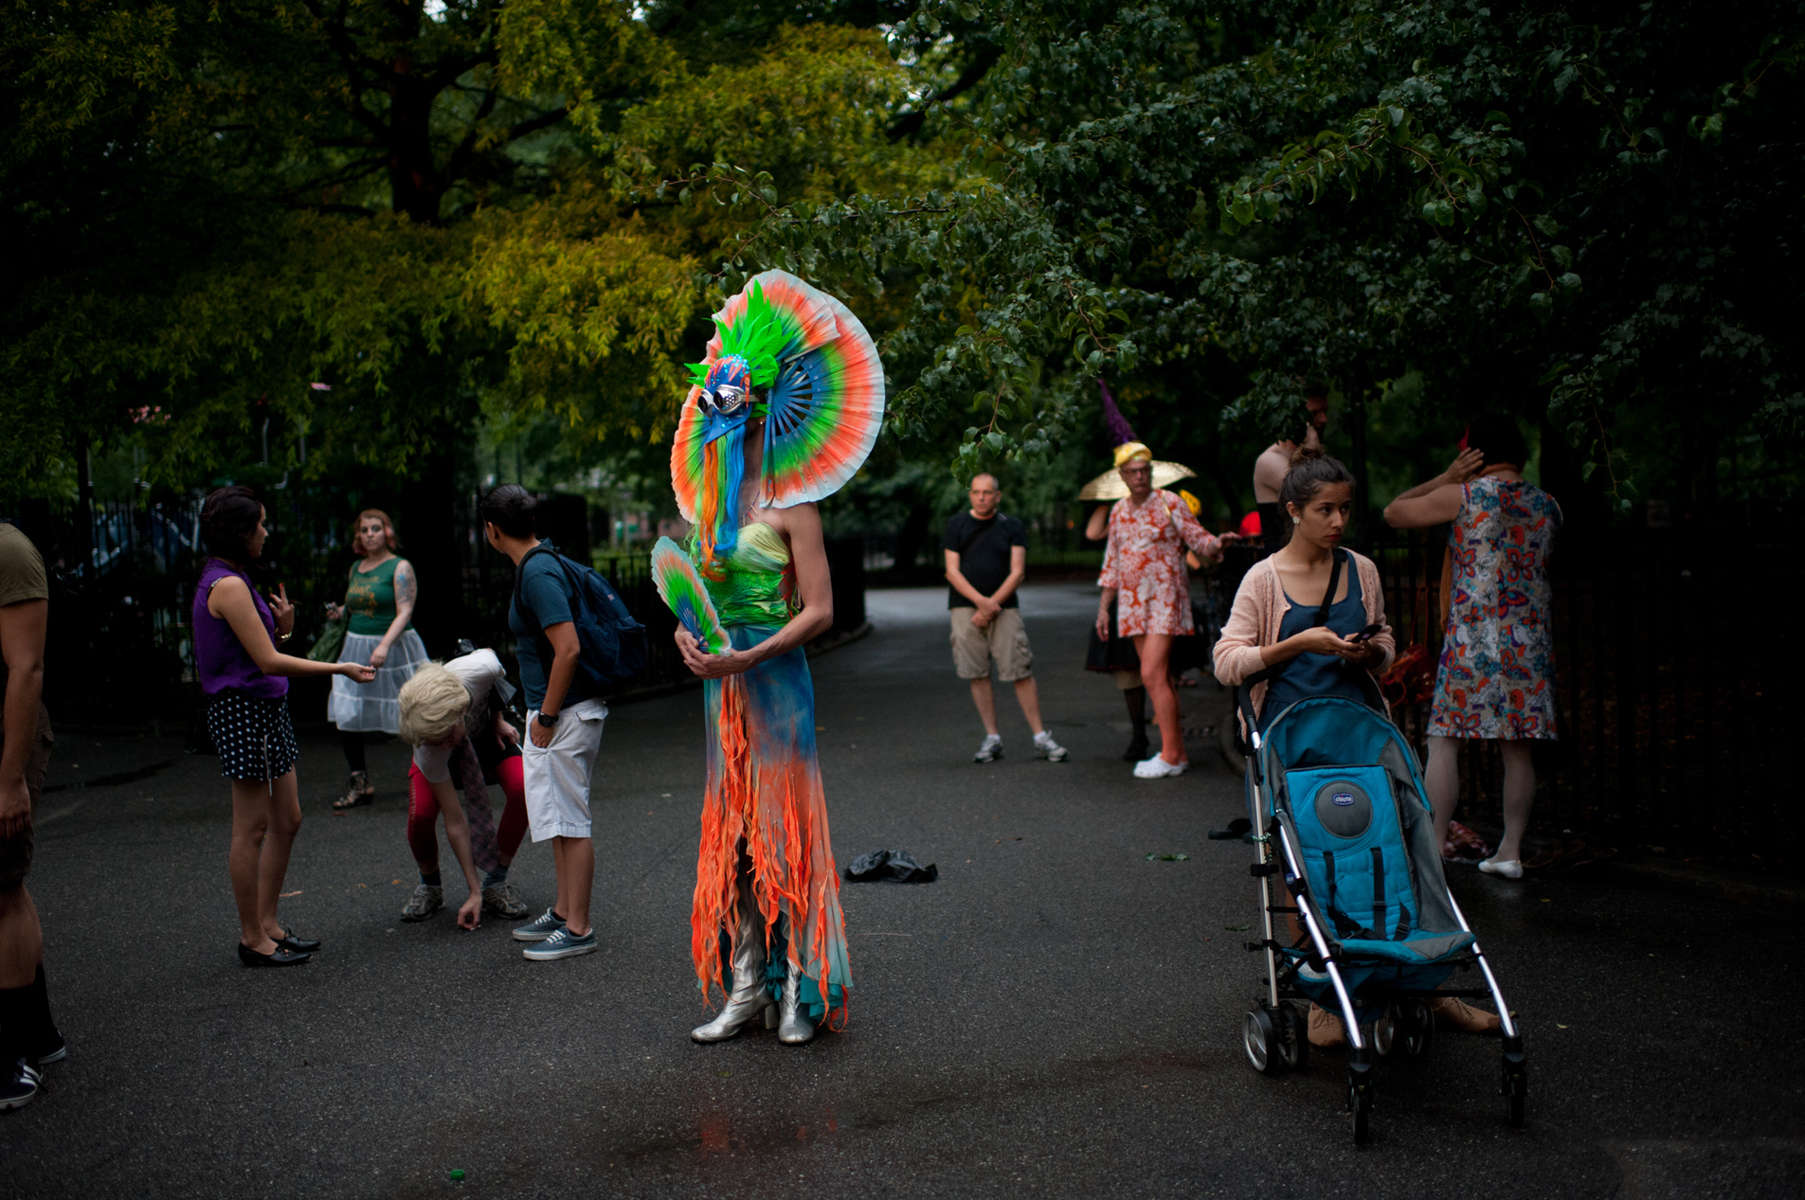 Friends congregate at Tompkins Square Park in the East Village in festive attire before heading to the Stonewall Inn in the West Village during the New York City Drag March.